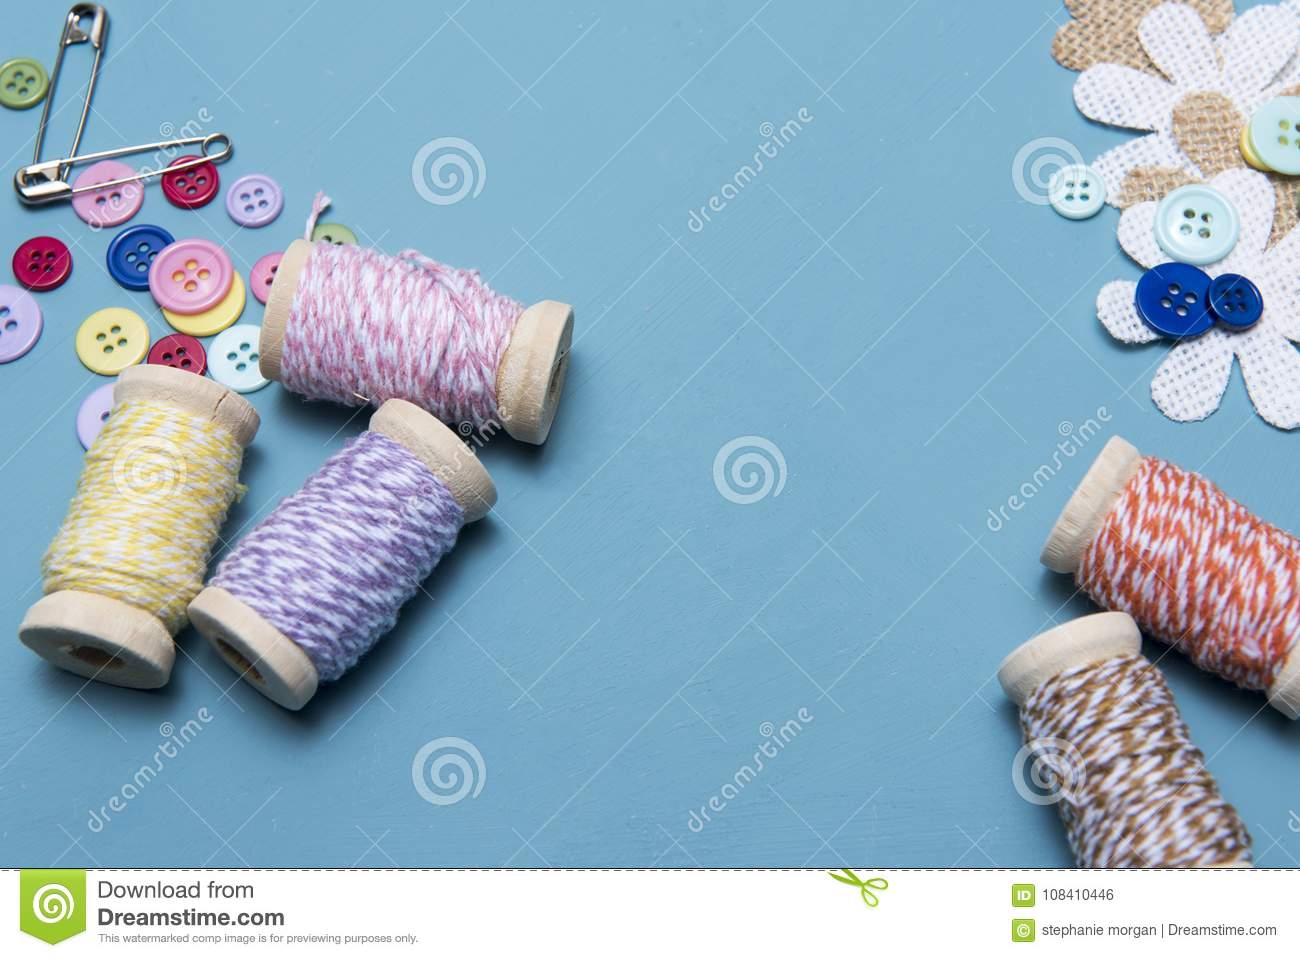 Arts And Crafts Background Image Of Colourful Twine With Buttons And Safety Pins Stock Photo Image Of Colourful Still 108410446